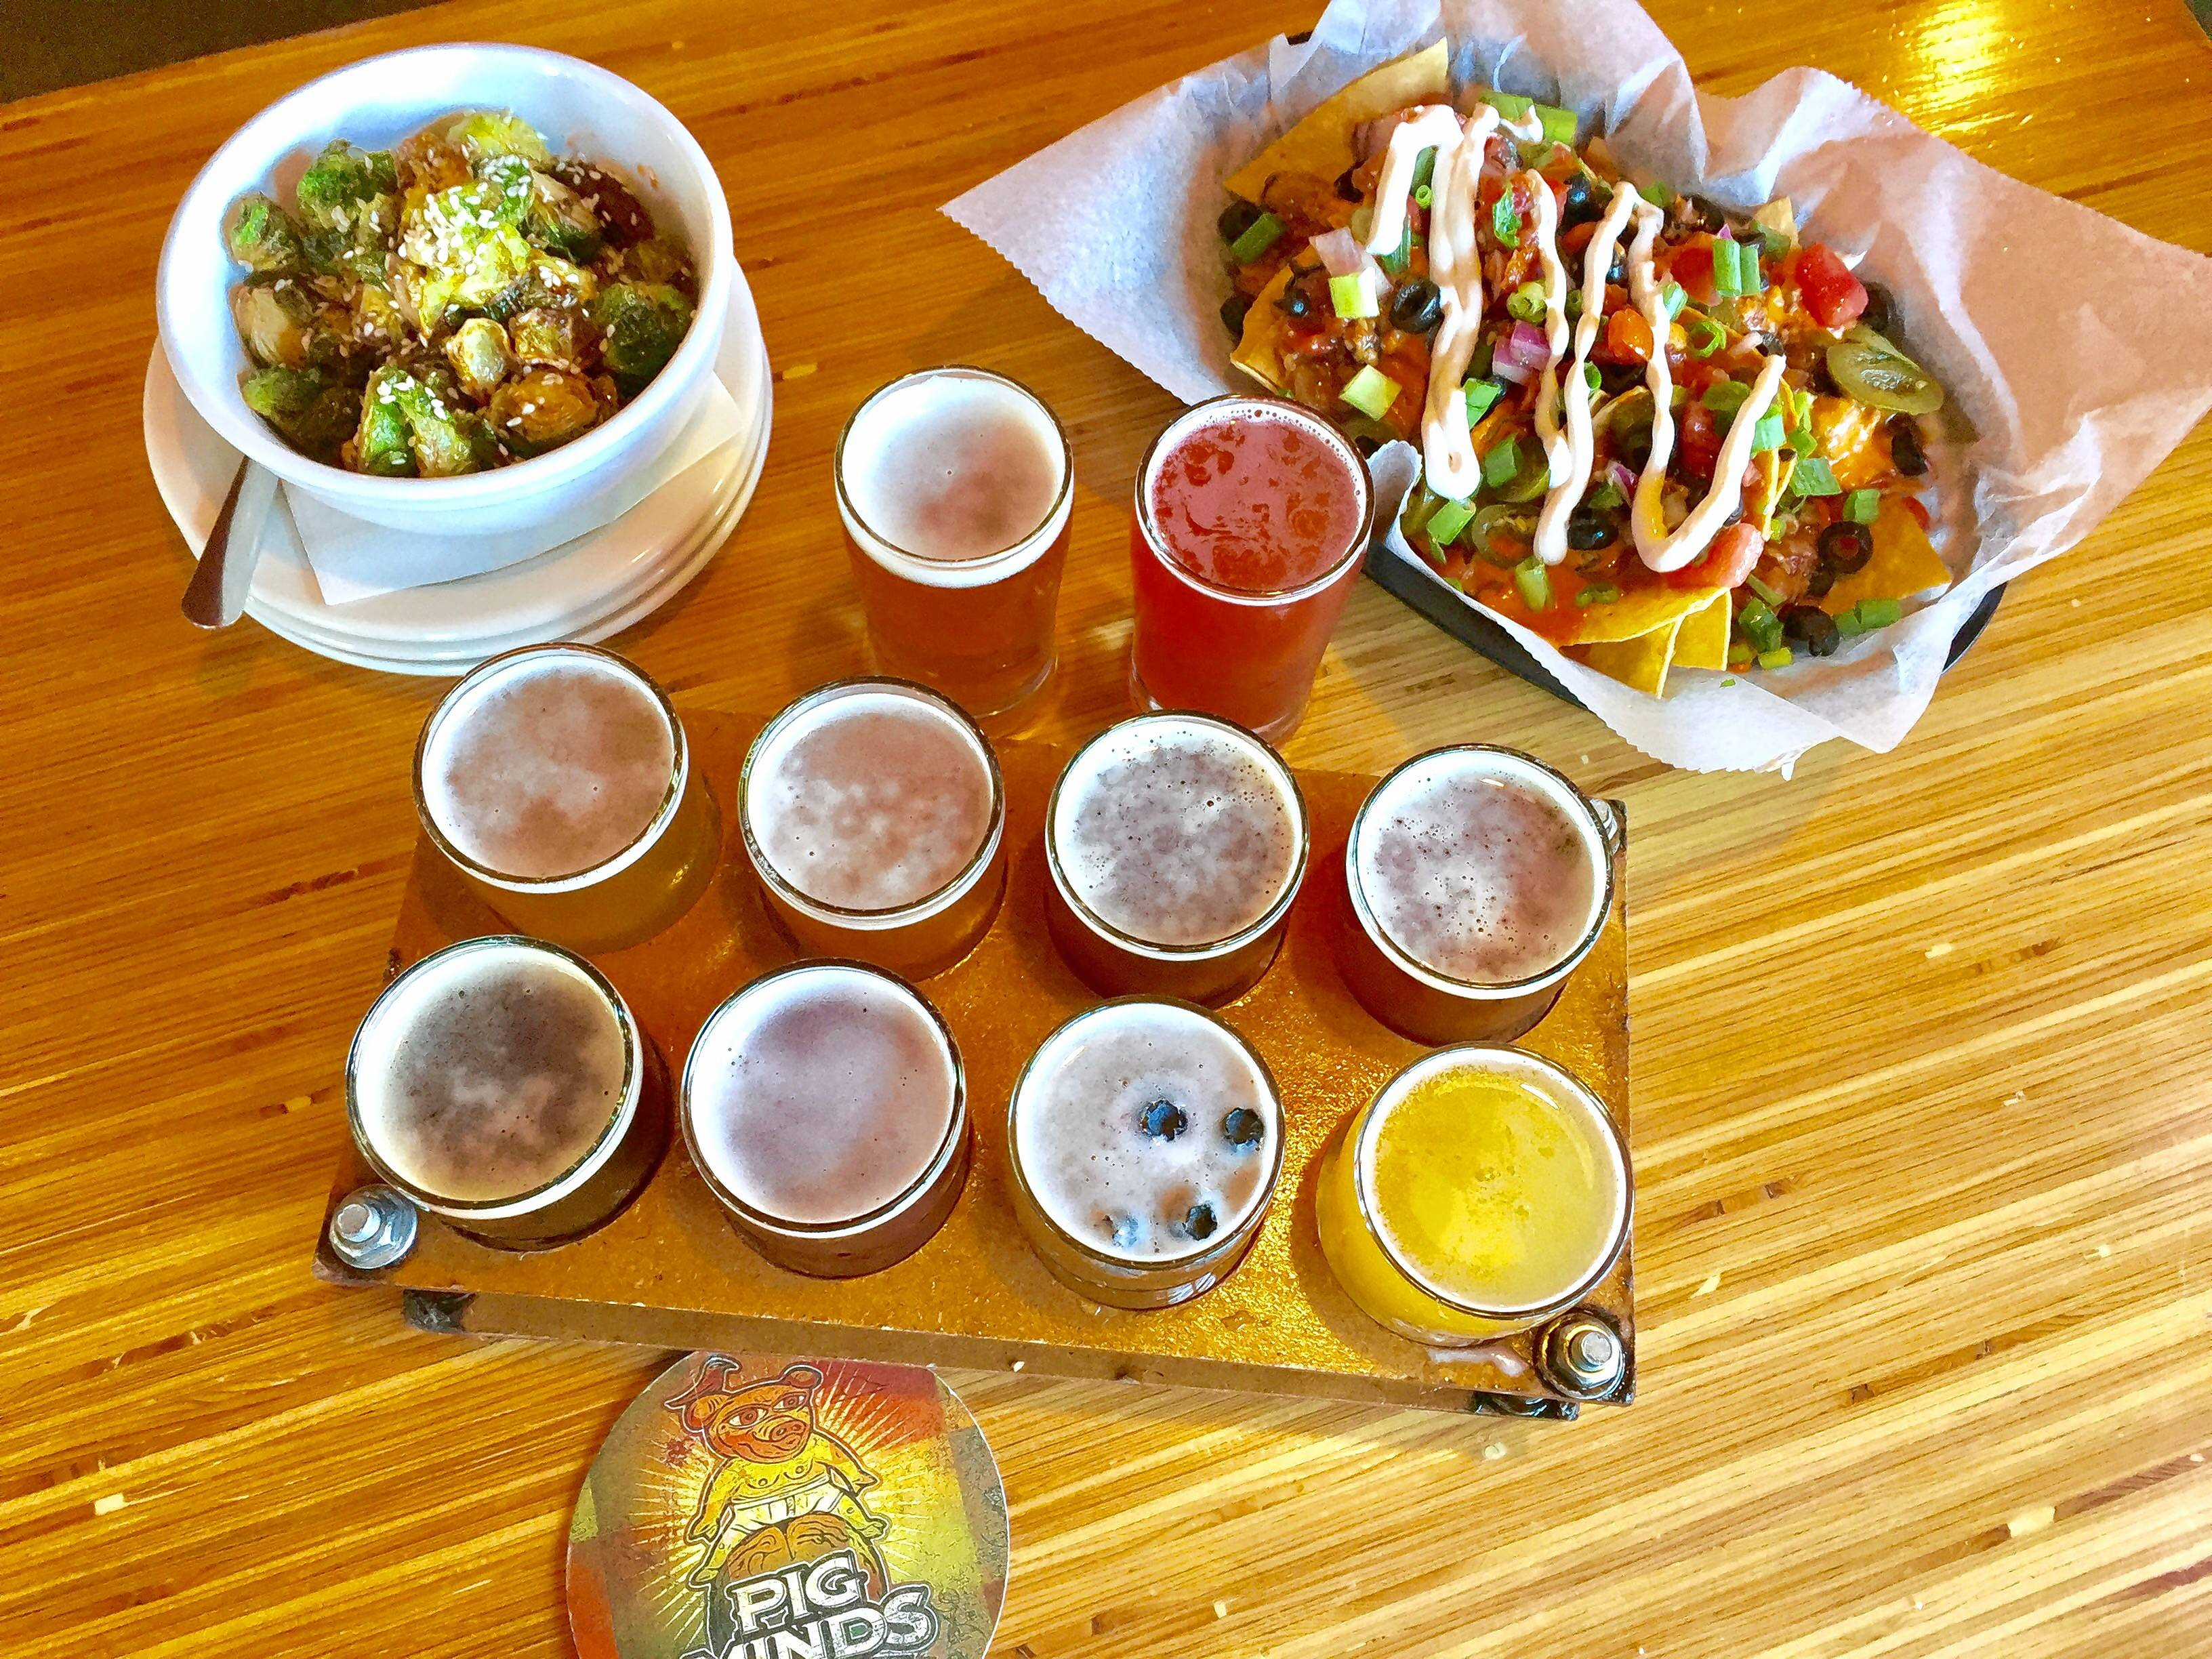 Brussels sprouts, Korean tacos  and a beer flight at Pig Minds in Machesney Park.